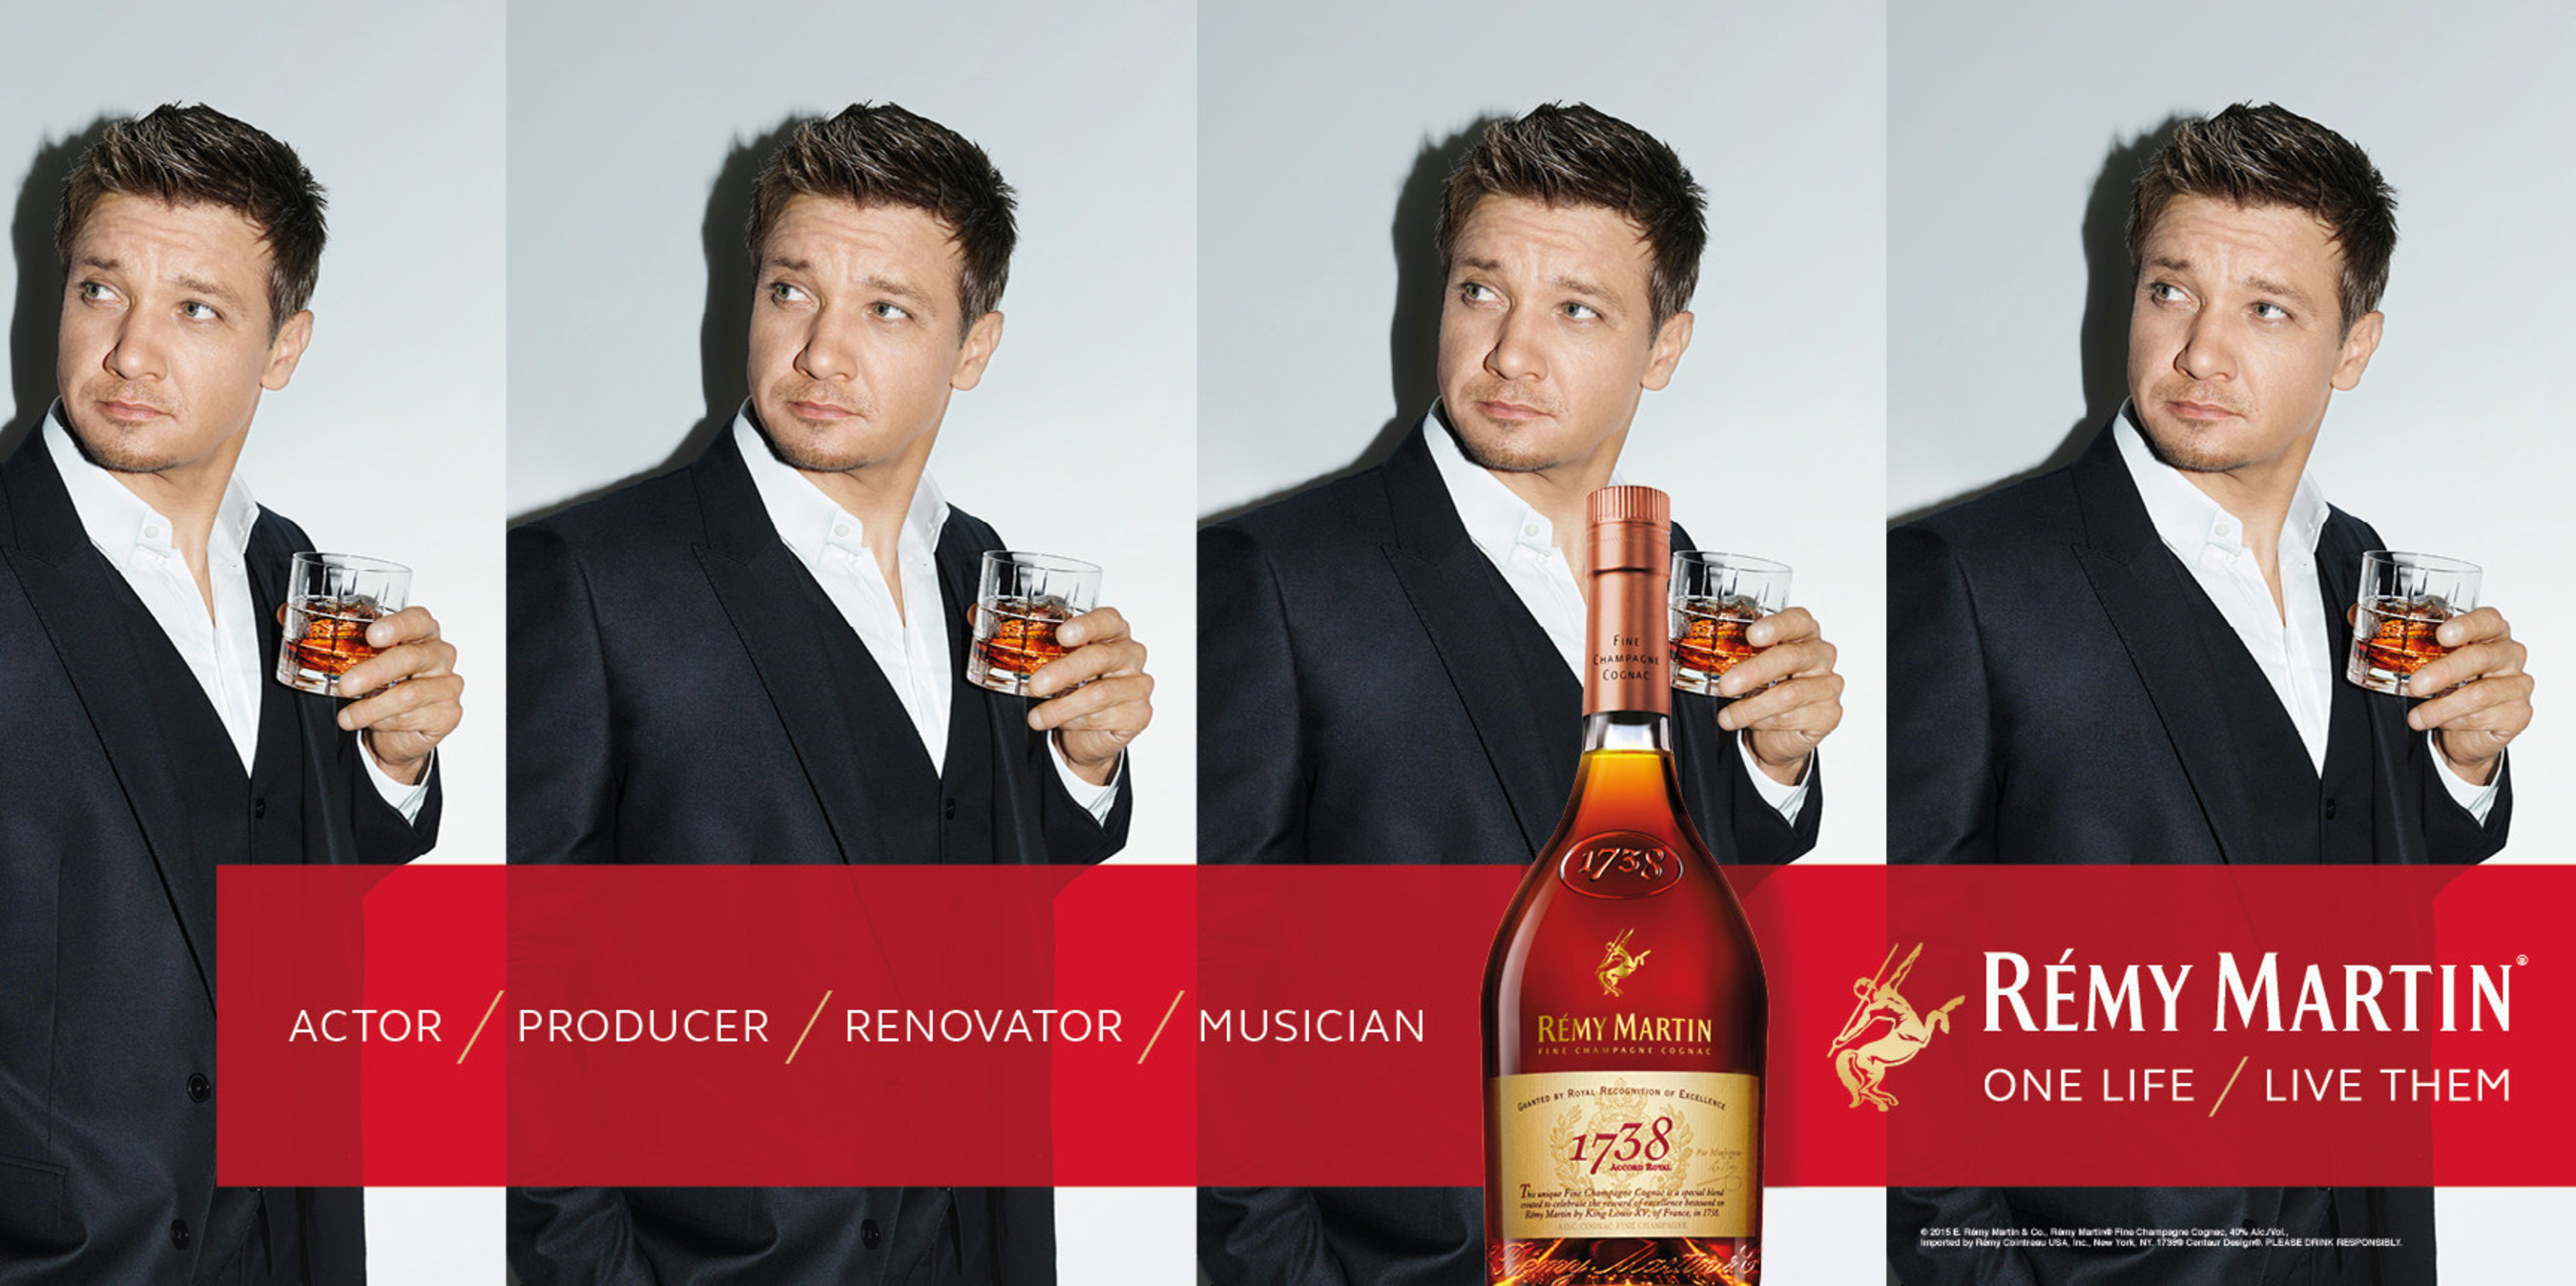 Remy Martin' Launches New Brand Campaign Featuring Actor Jeremy Renner